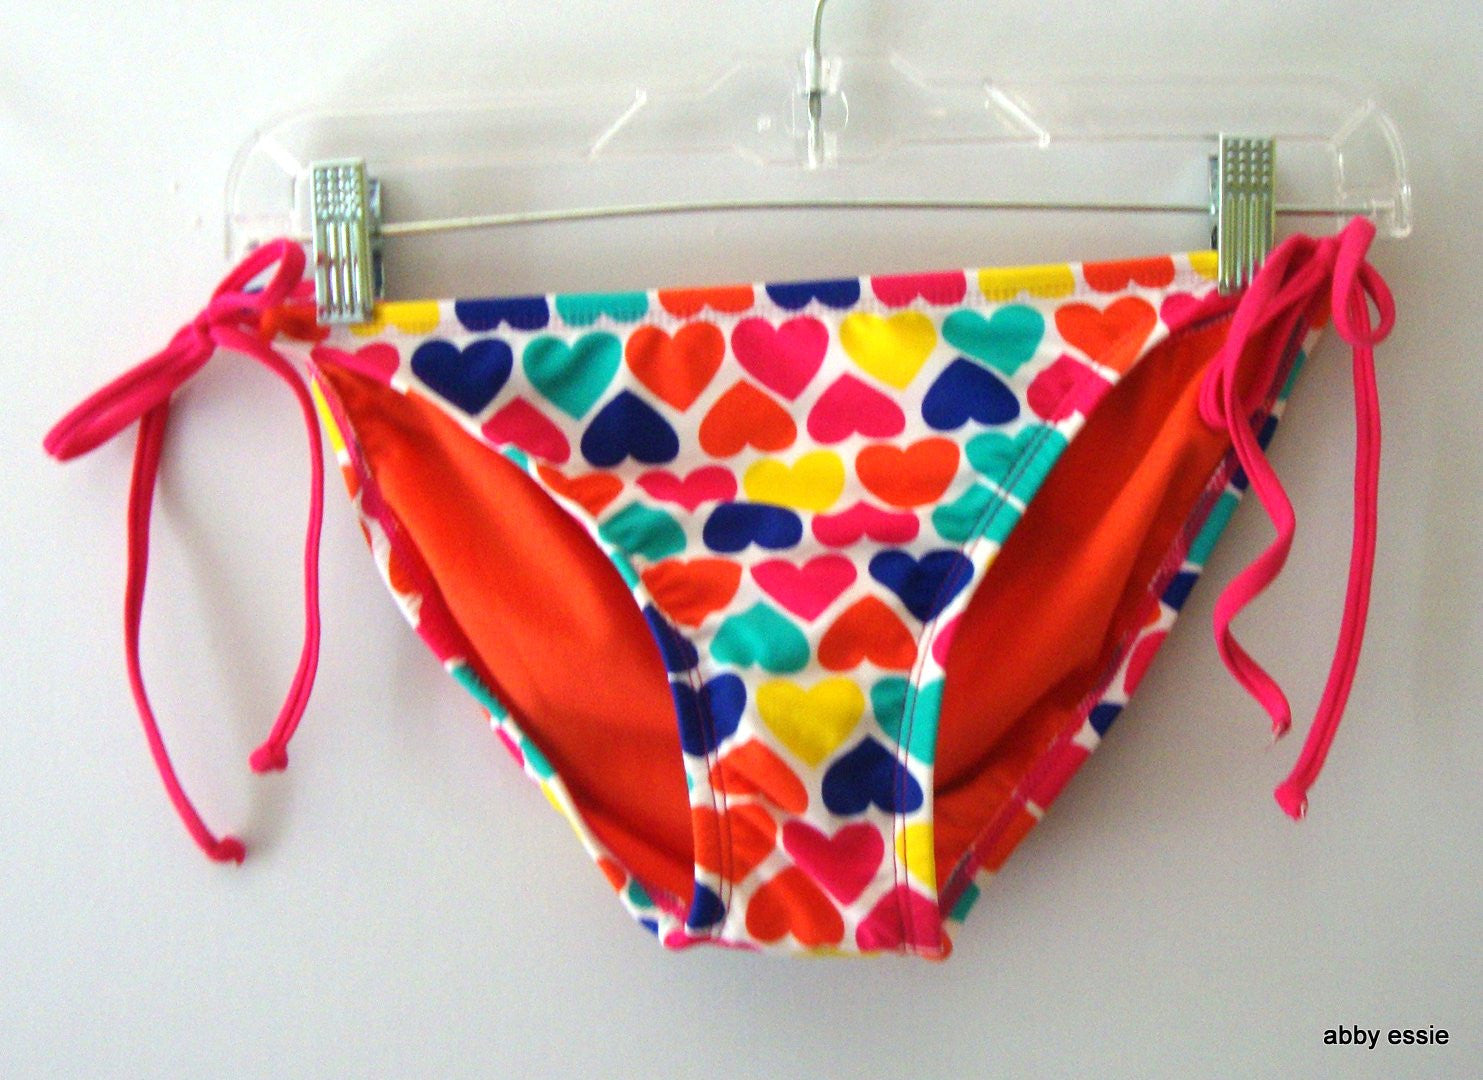 NWT XHILARATION JUNIORS RED PINK YELLOW BLUE STRING BIKINI BOTTOM MEDIUM LS-2820